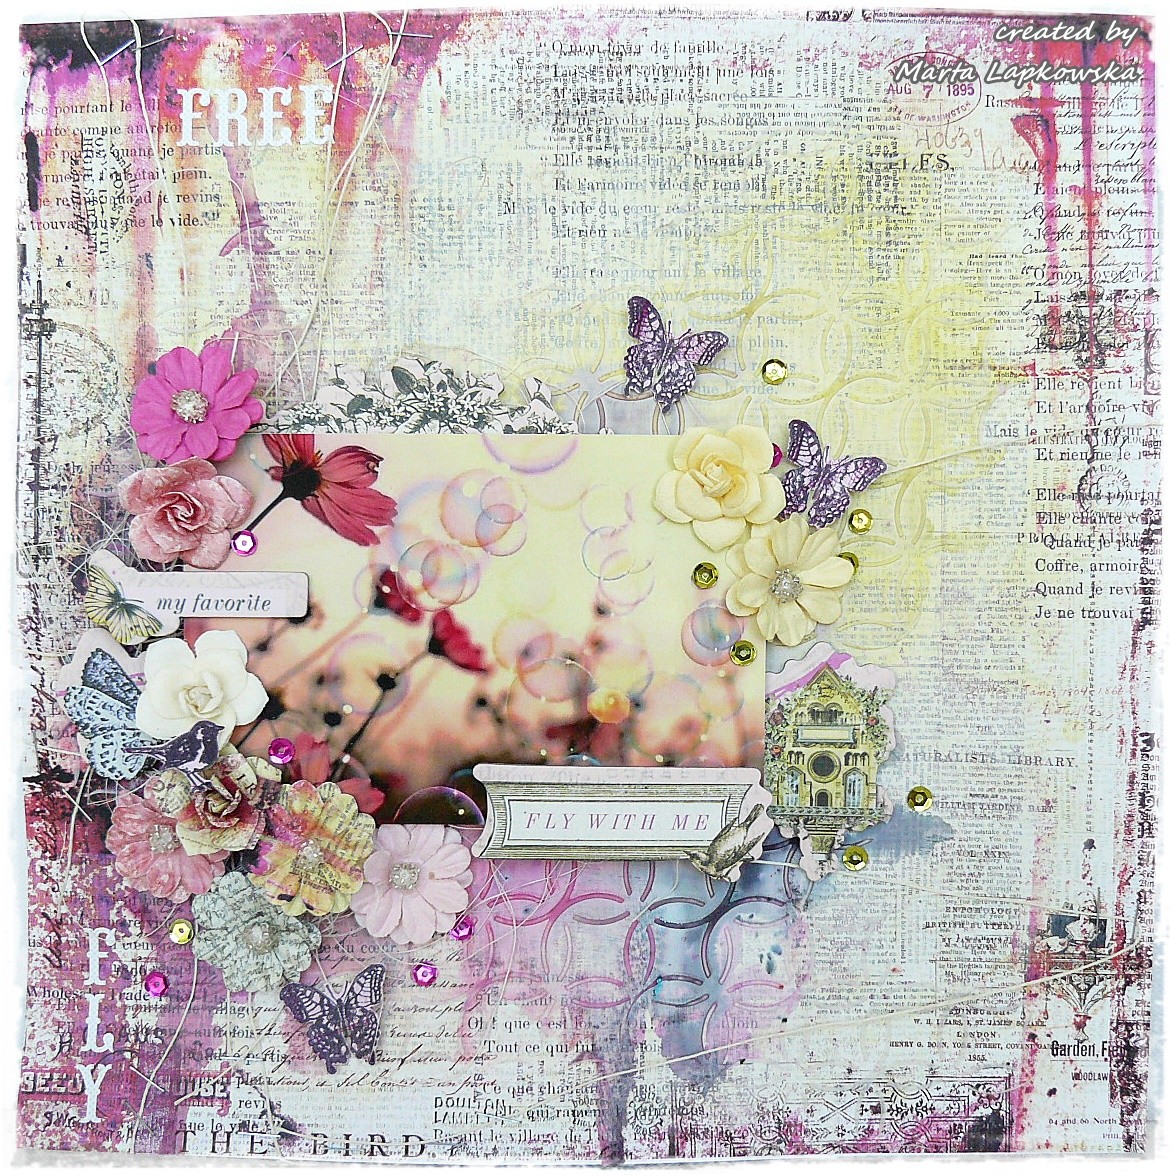 Limited Edition July kit projects - Marta Lapkowska2.JPG